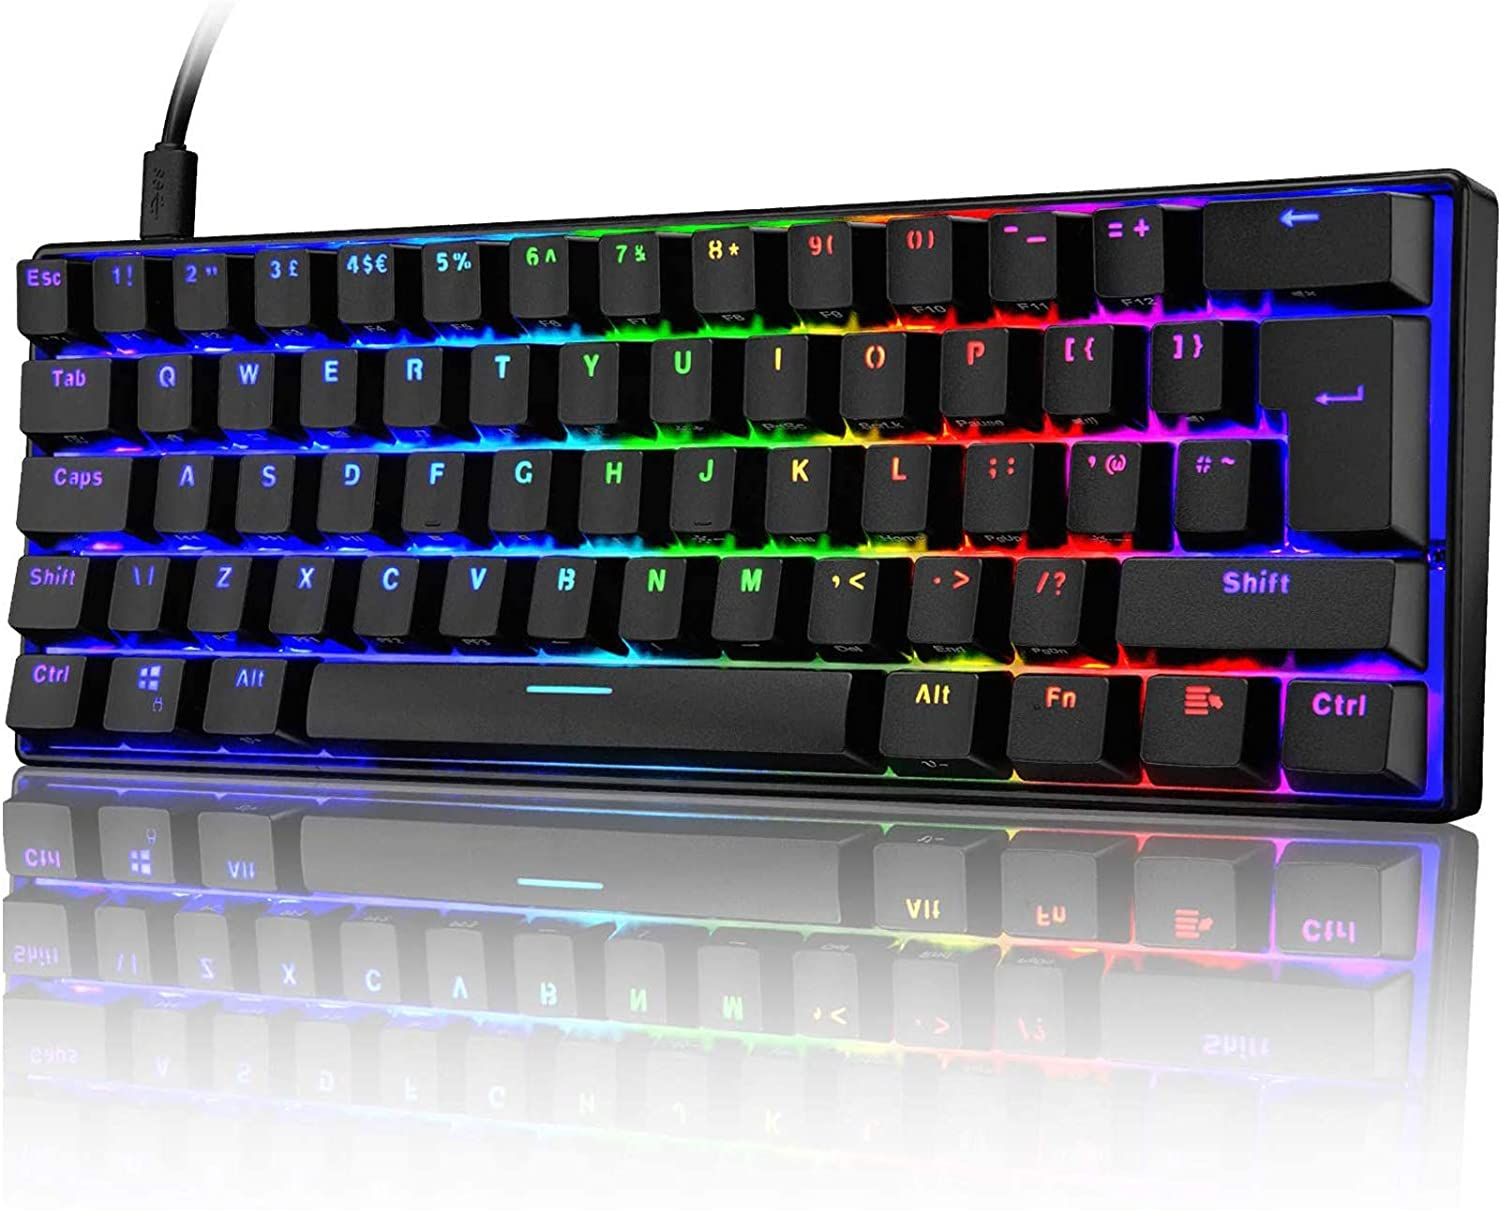 60% Mechanical Gaming Keyboard Mini Portable with Rainbow RGB Backlit Full Anti-Ghosting 61 Key Ergonomic Metal Plate Wired Type-C USB Waterproof for Typist Laptop PC Mac Gamer(Black/Brown Switch)